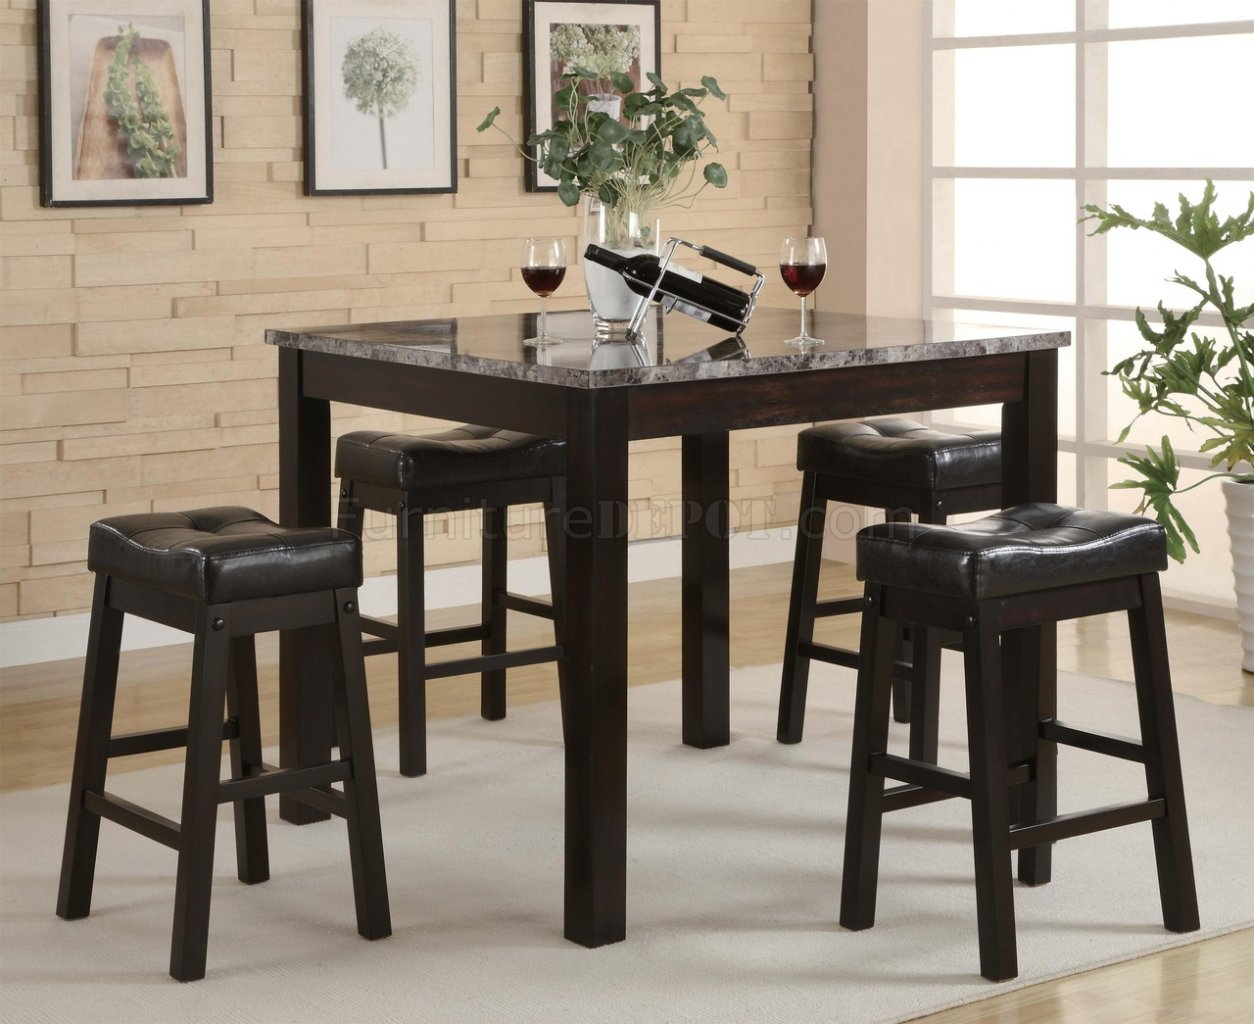 Black modern 5pc faux marble top counter height dining set Black marble dining table set